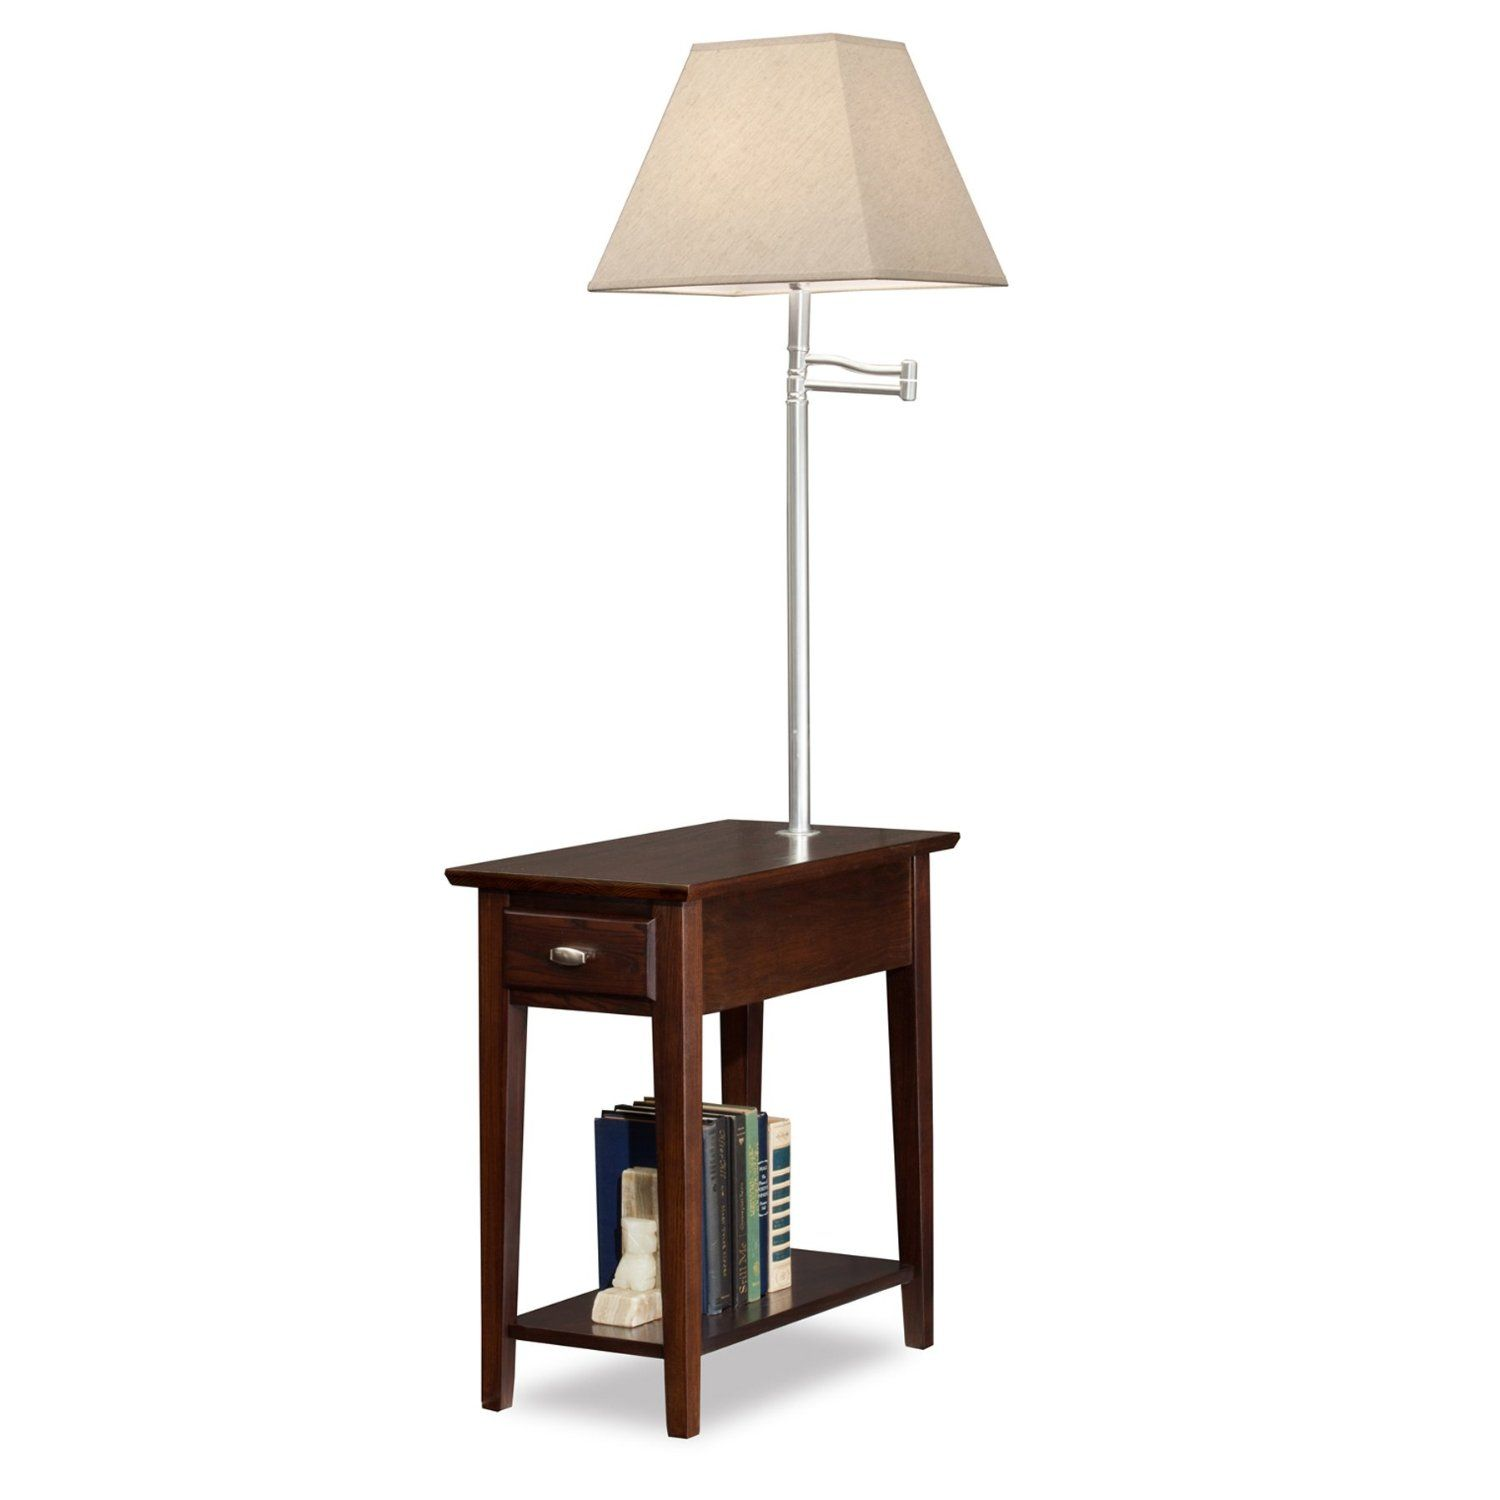 A Floor Lamp With A Table Side Table Lamps Transitional Table